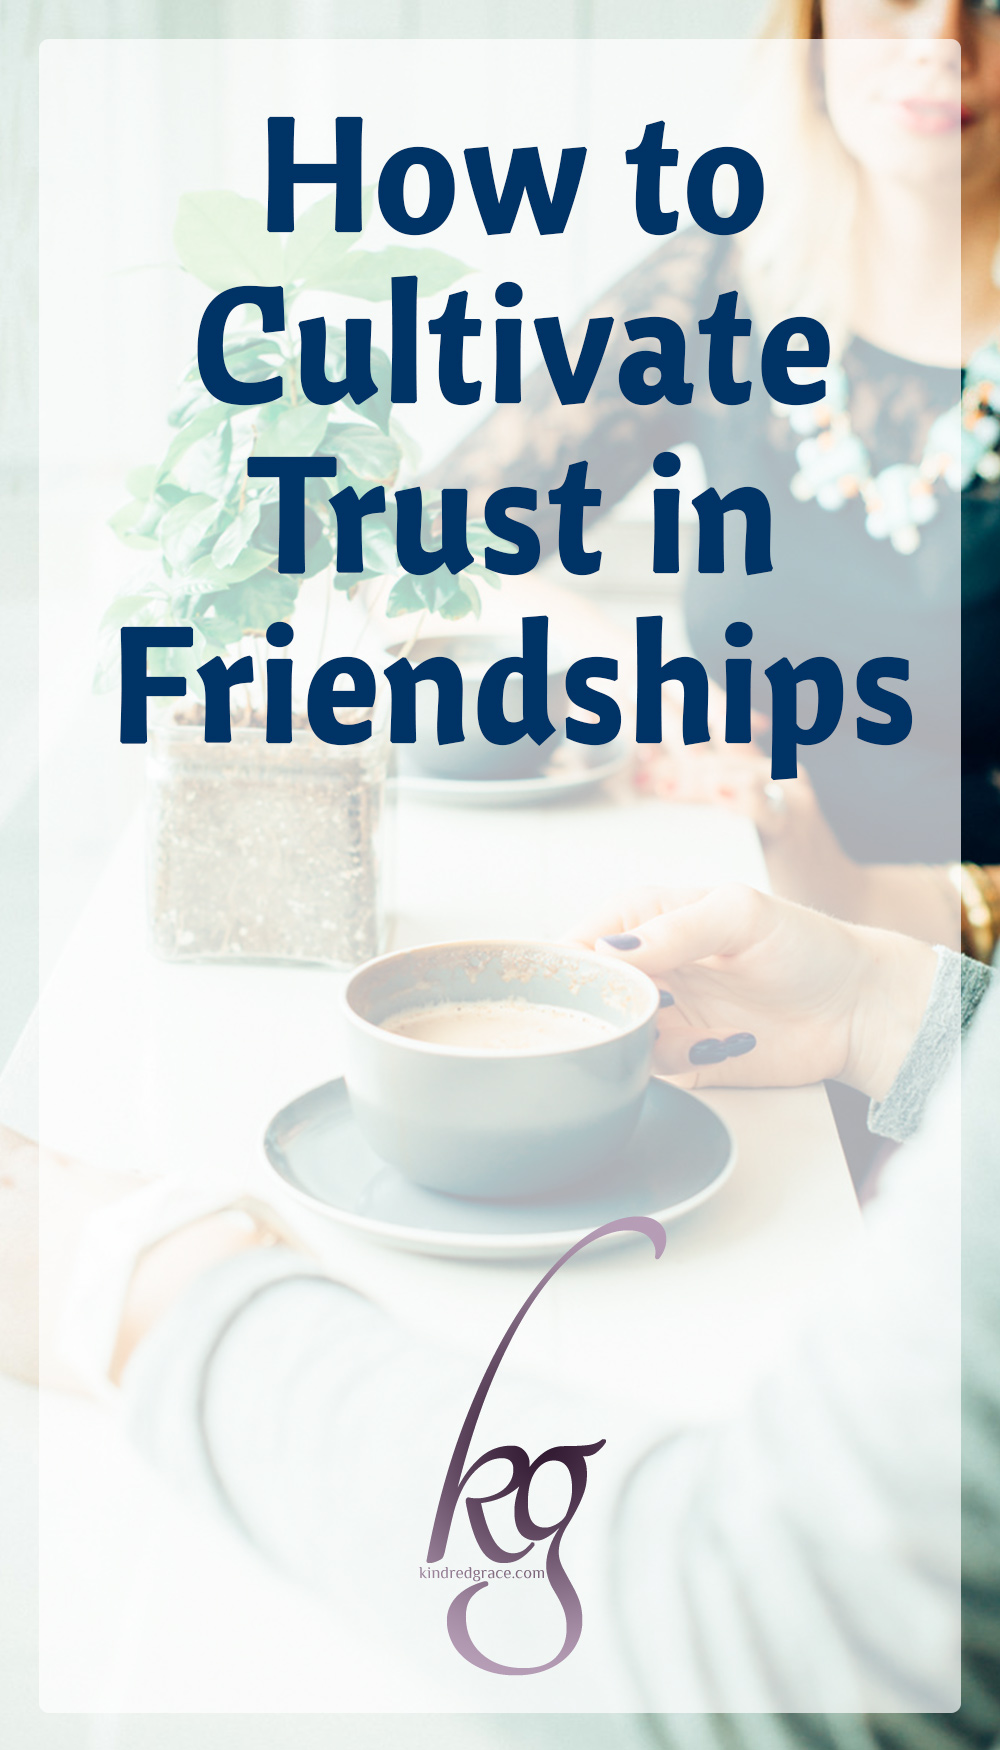 How to Cultivate Trust in Friendships via @KindredGrace